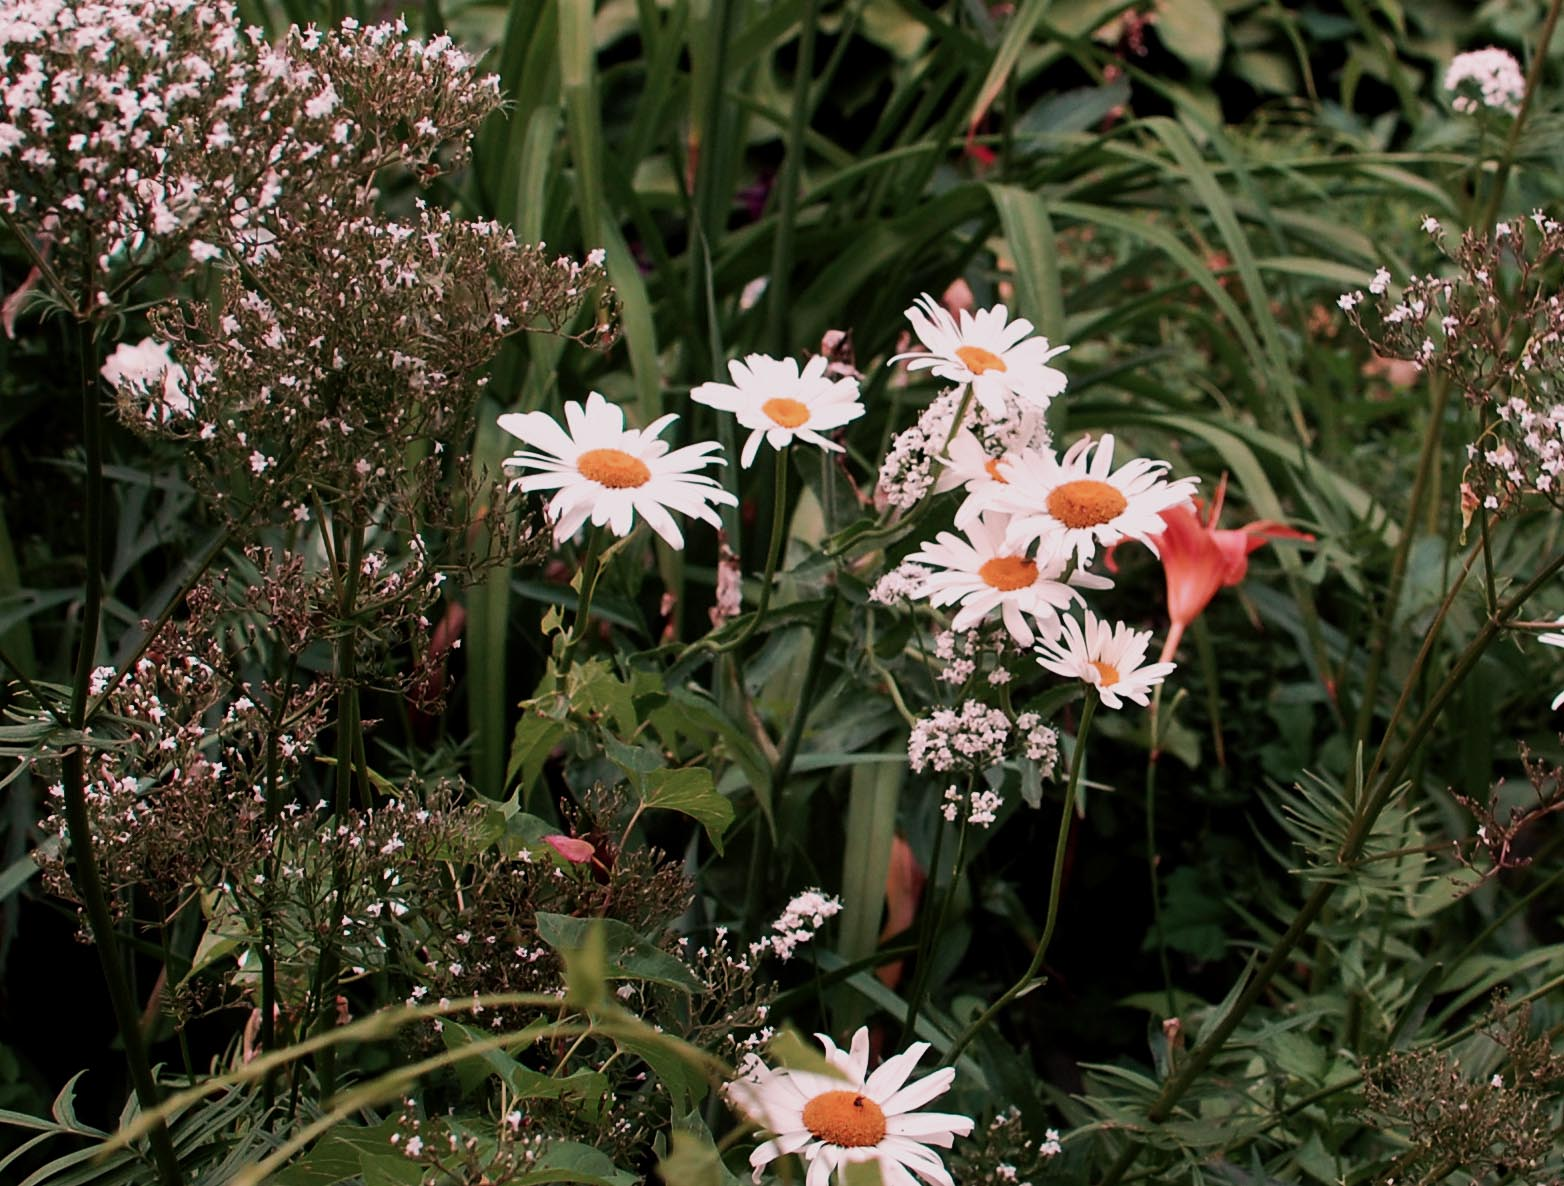 Daises in a community garden